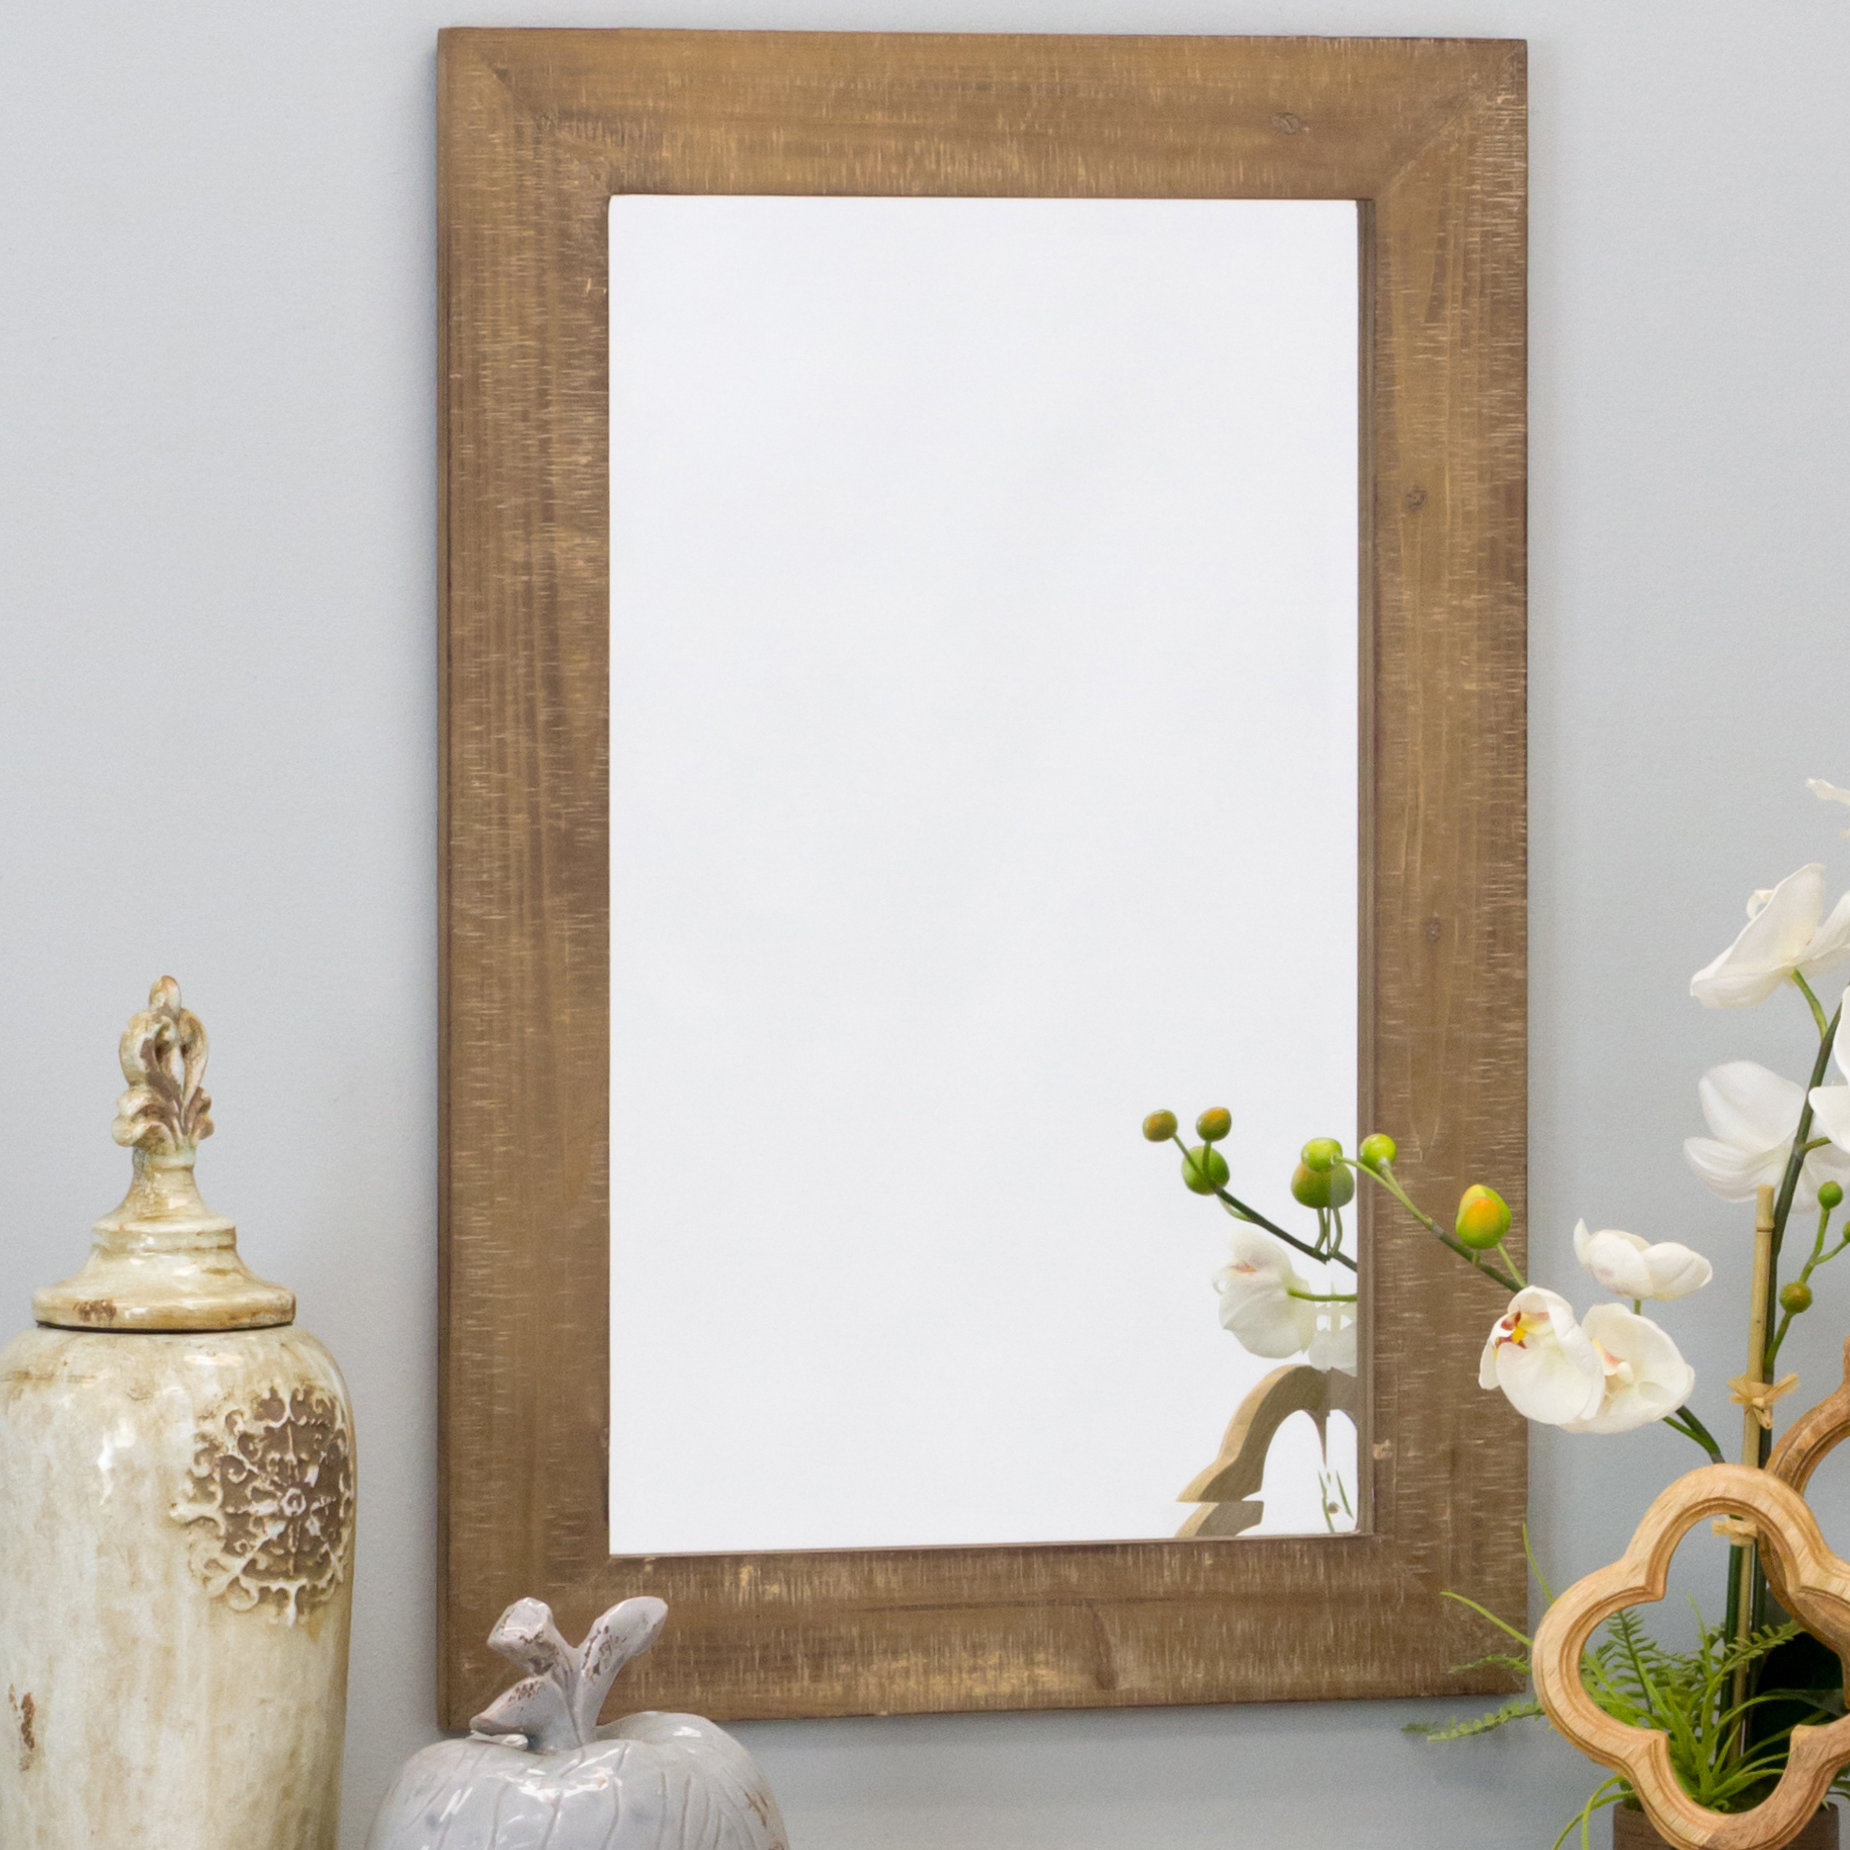 Longwood Rustic Beveled Accent Mirror Pertaining To Longwood Rustic Beveled Accent Mirrors (Image 7 of 20)